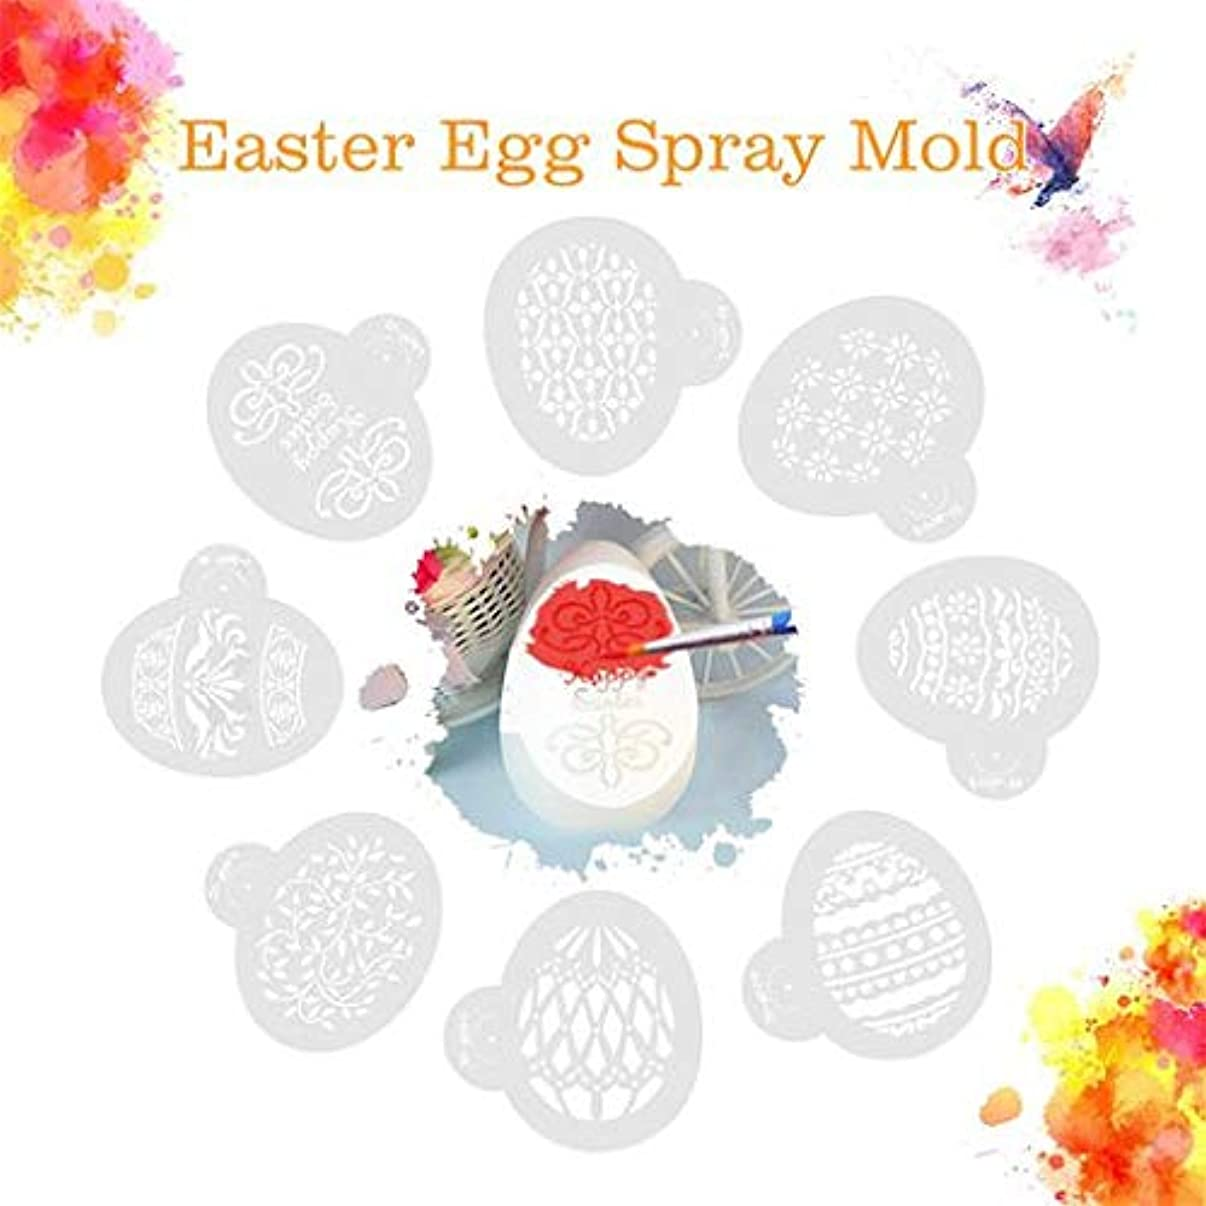 The Best Gift!!! Junshion 8pcs Easter Eggs Cak Tools Cake Stencil Template Spray Coffee Decoration Hand Painted Eggs